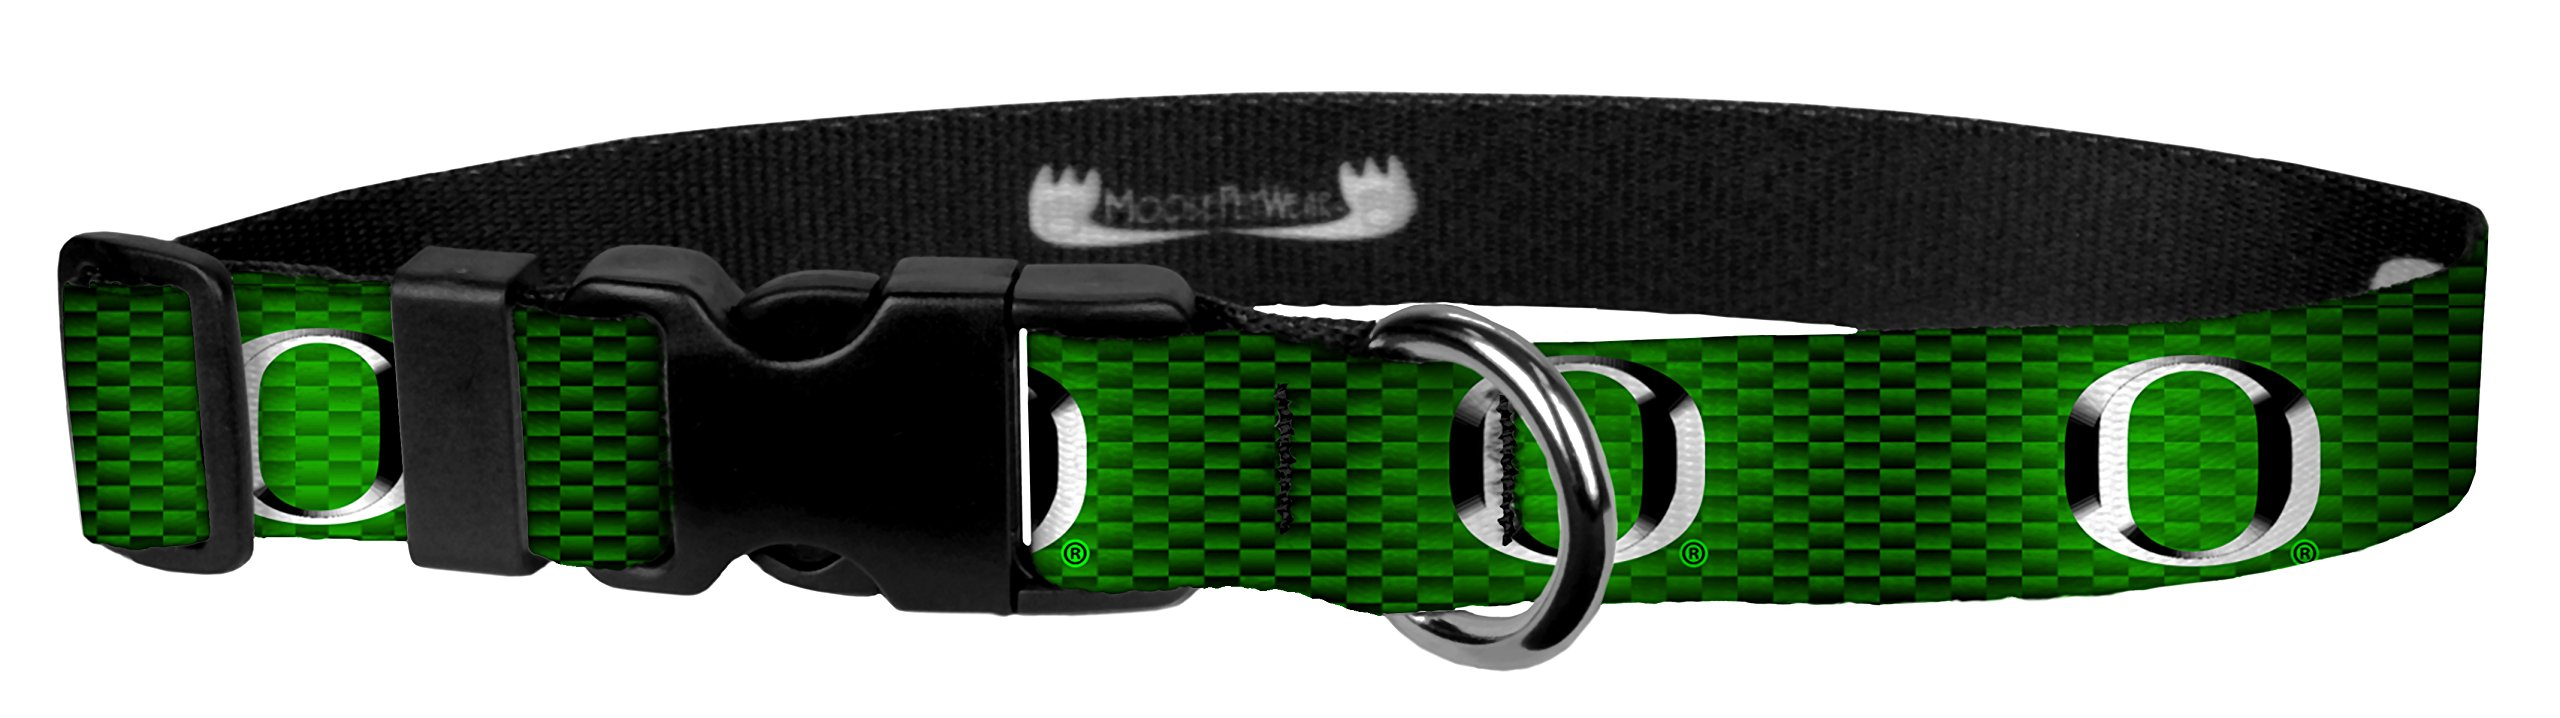 Moose Pet Wear Dog Collar - University of Oregon Ducks Adjustable Pet Collars, Made in The USA - 3/4 Inch Wide, Medium, Green Carbon Fiber Chrome O